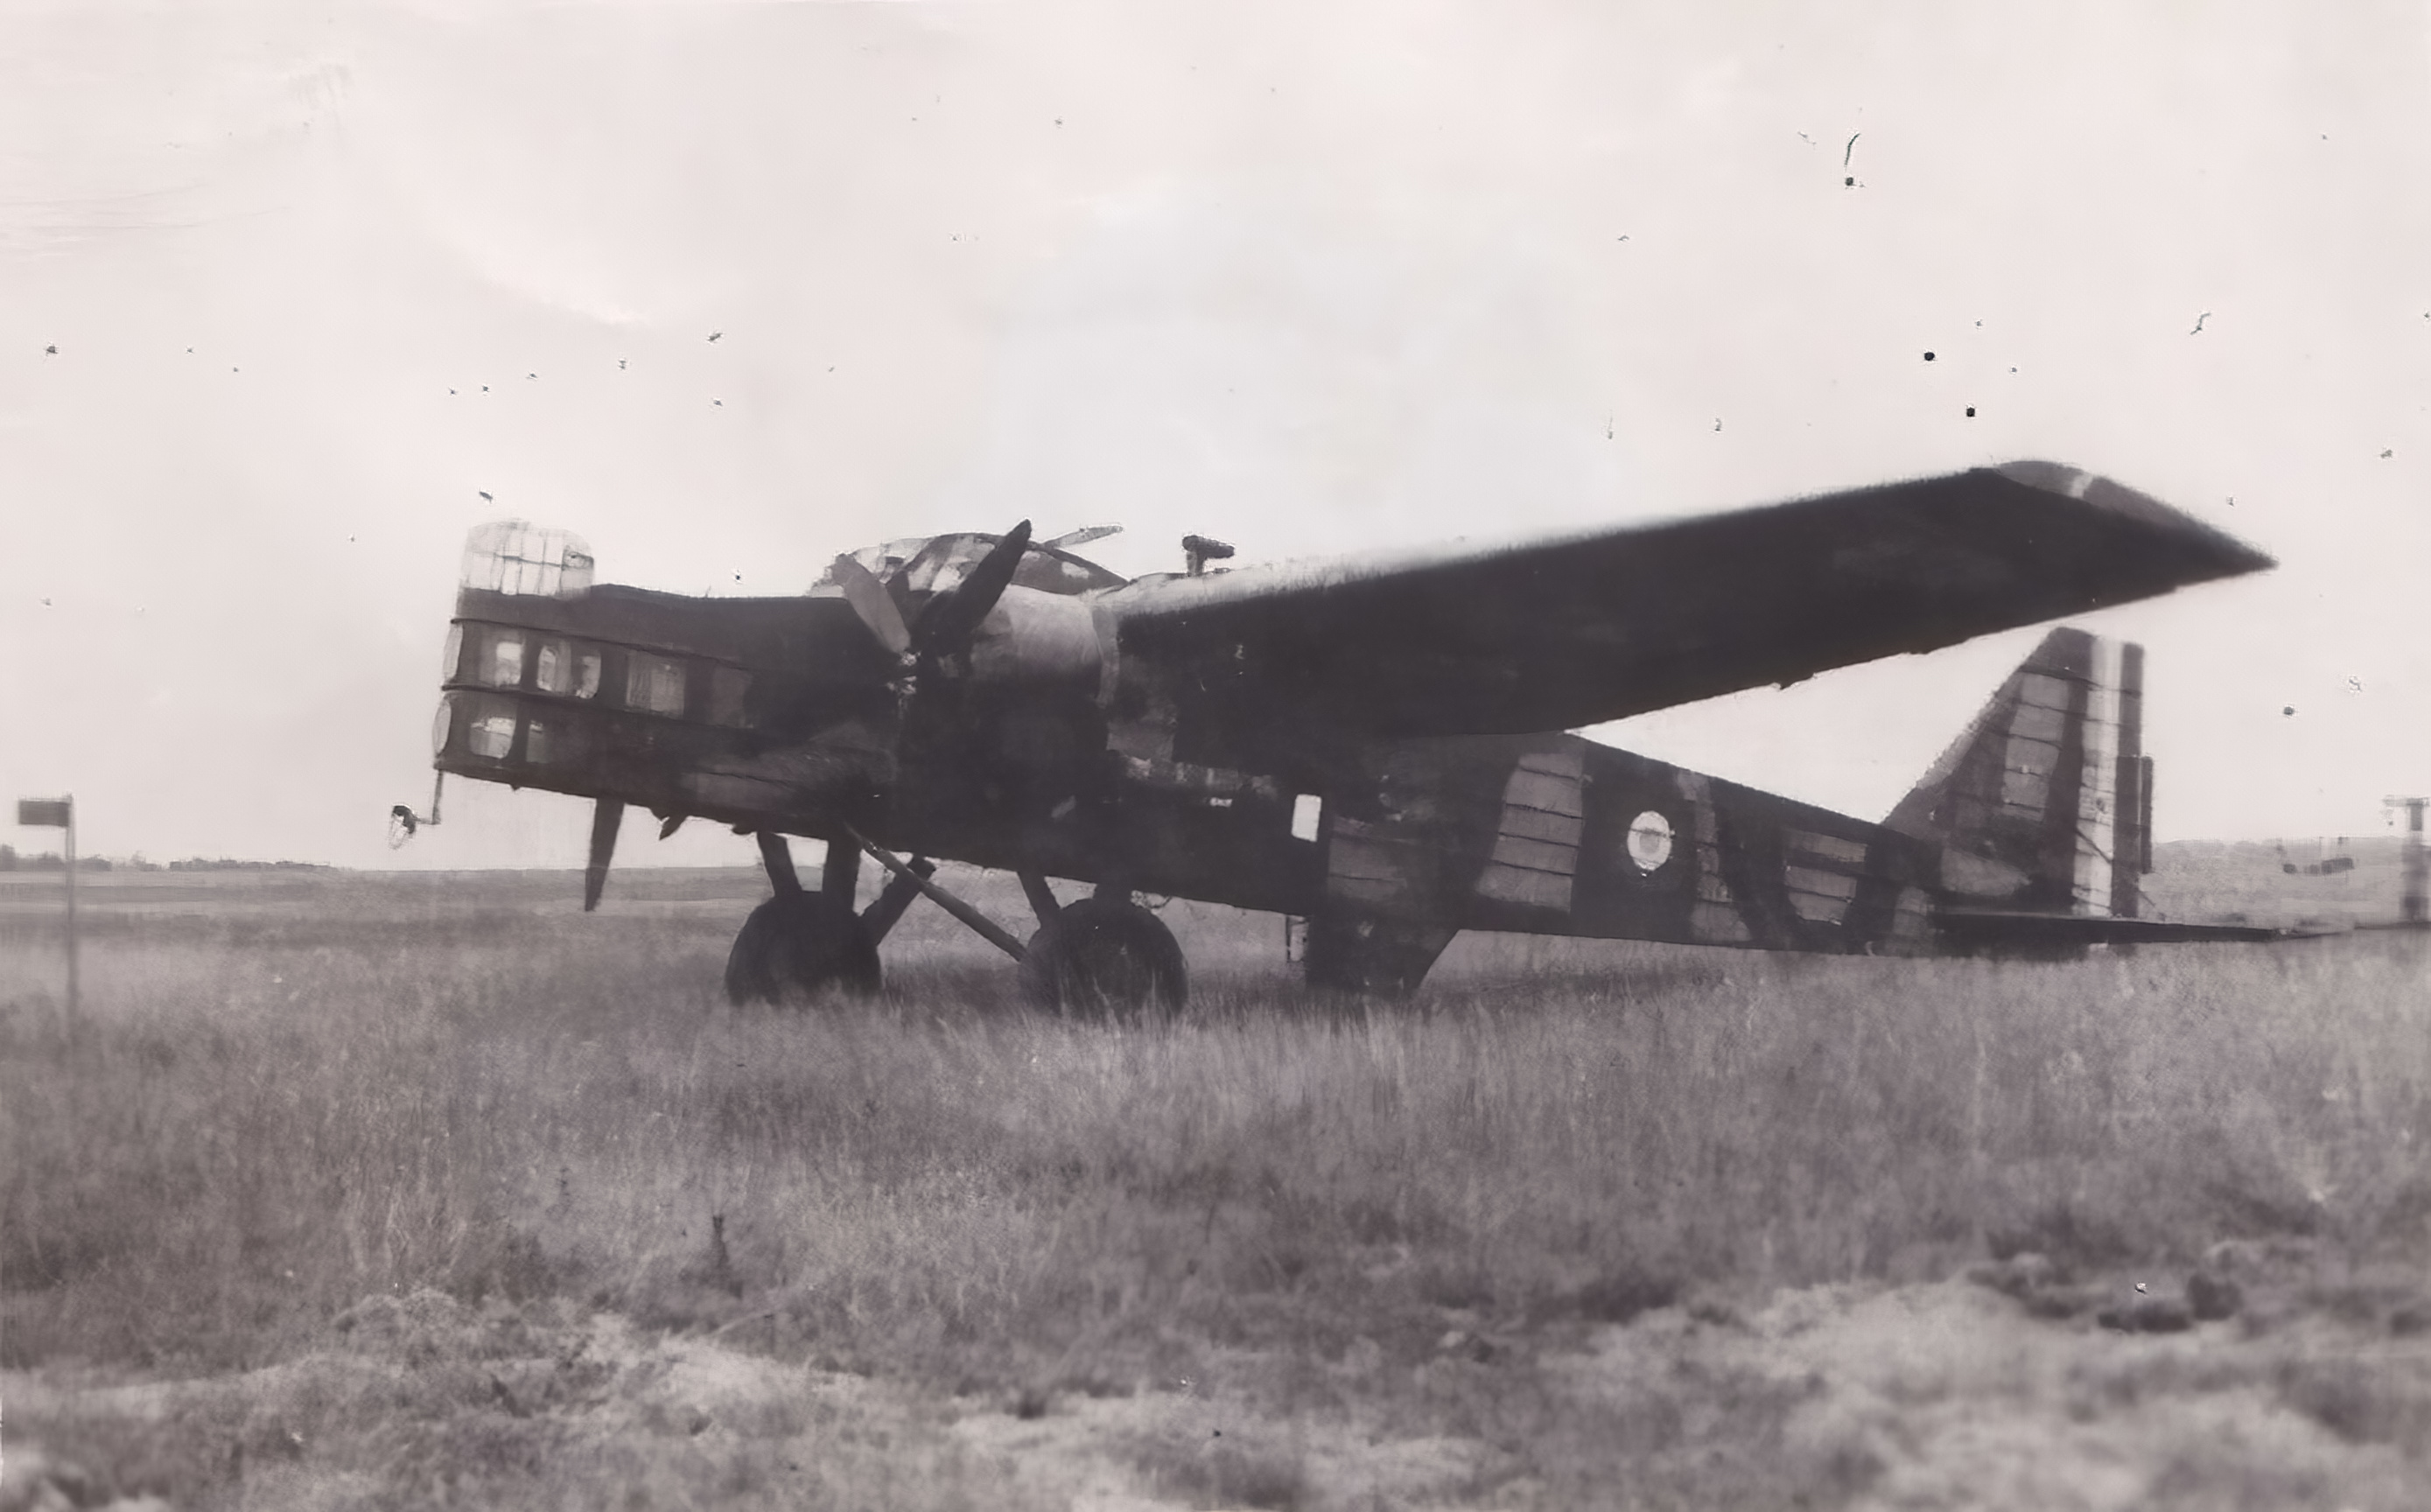 French Airforce Bloch MB 200 captured France June 1940 ebay 01